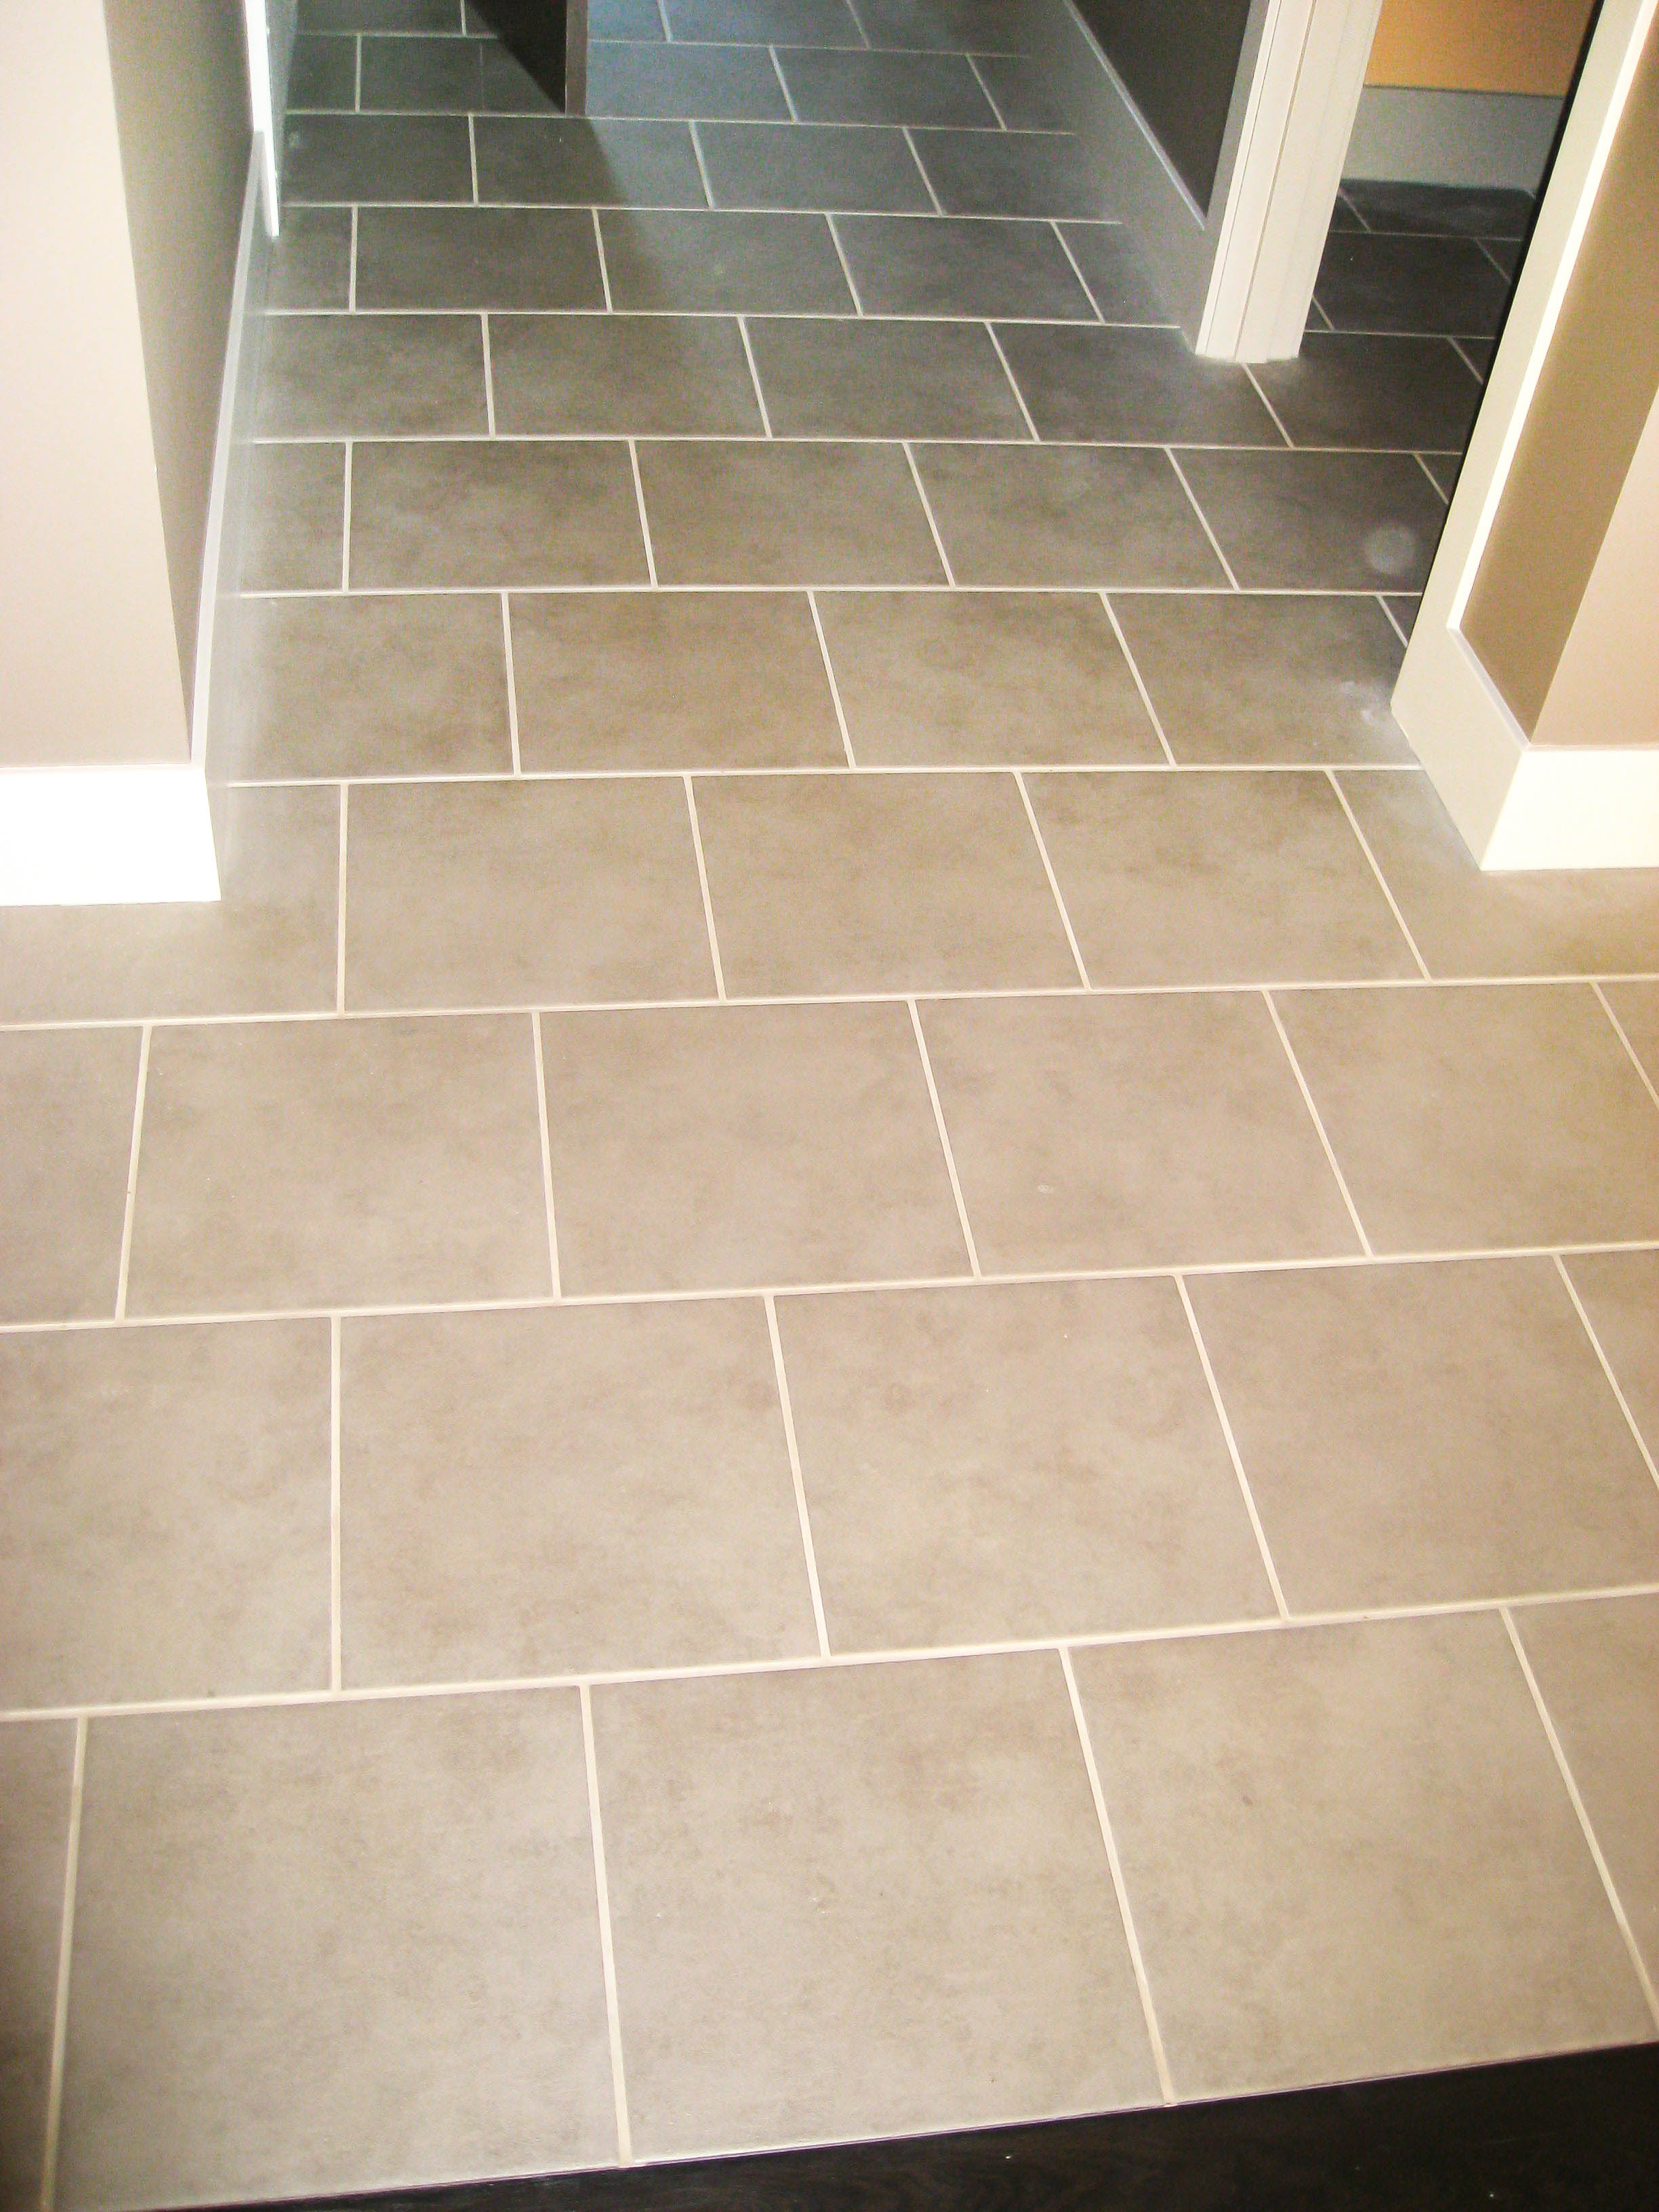 Seattle Tile and Grout Cleaning - Tile Contractor | IRC Tile Services